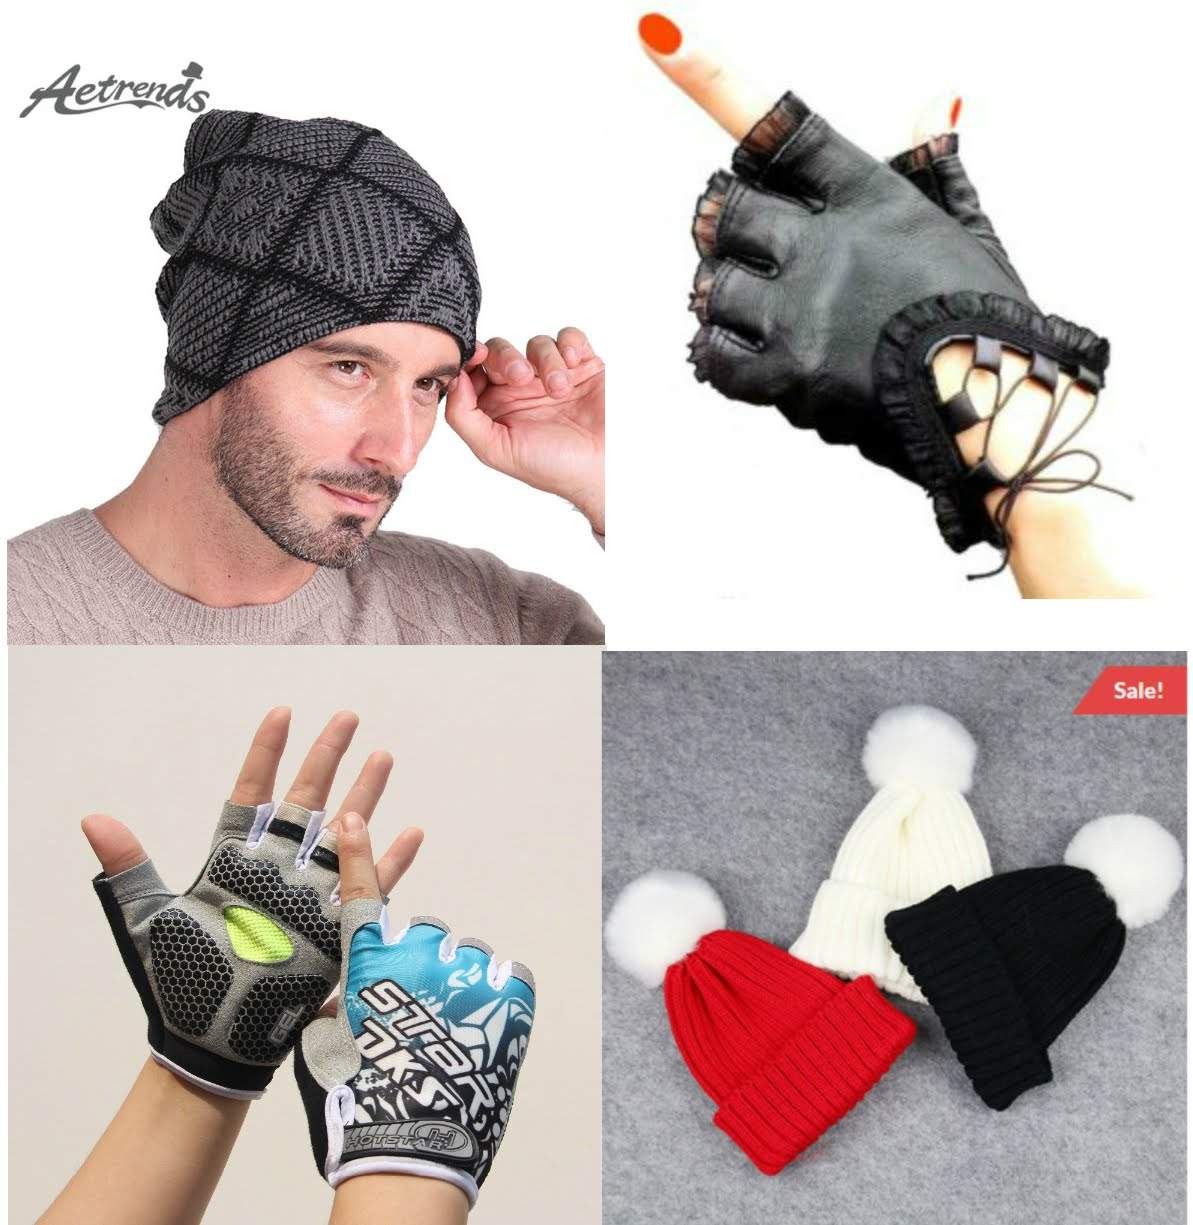 New fashion Leather Gloves&Cool Beanies-Lower Prices before Winter Kicks in !